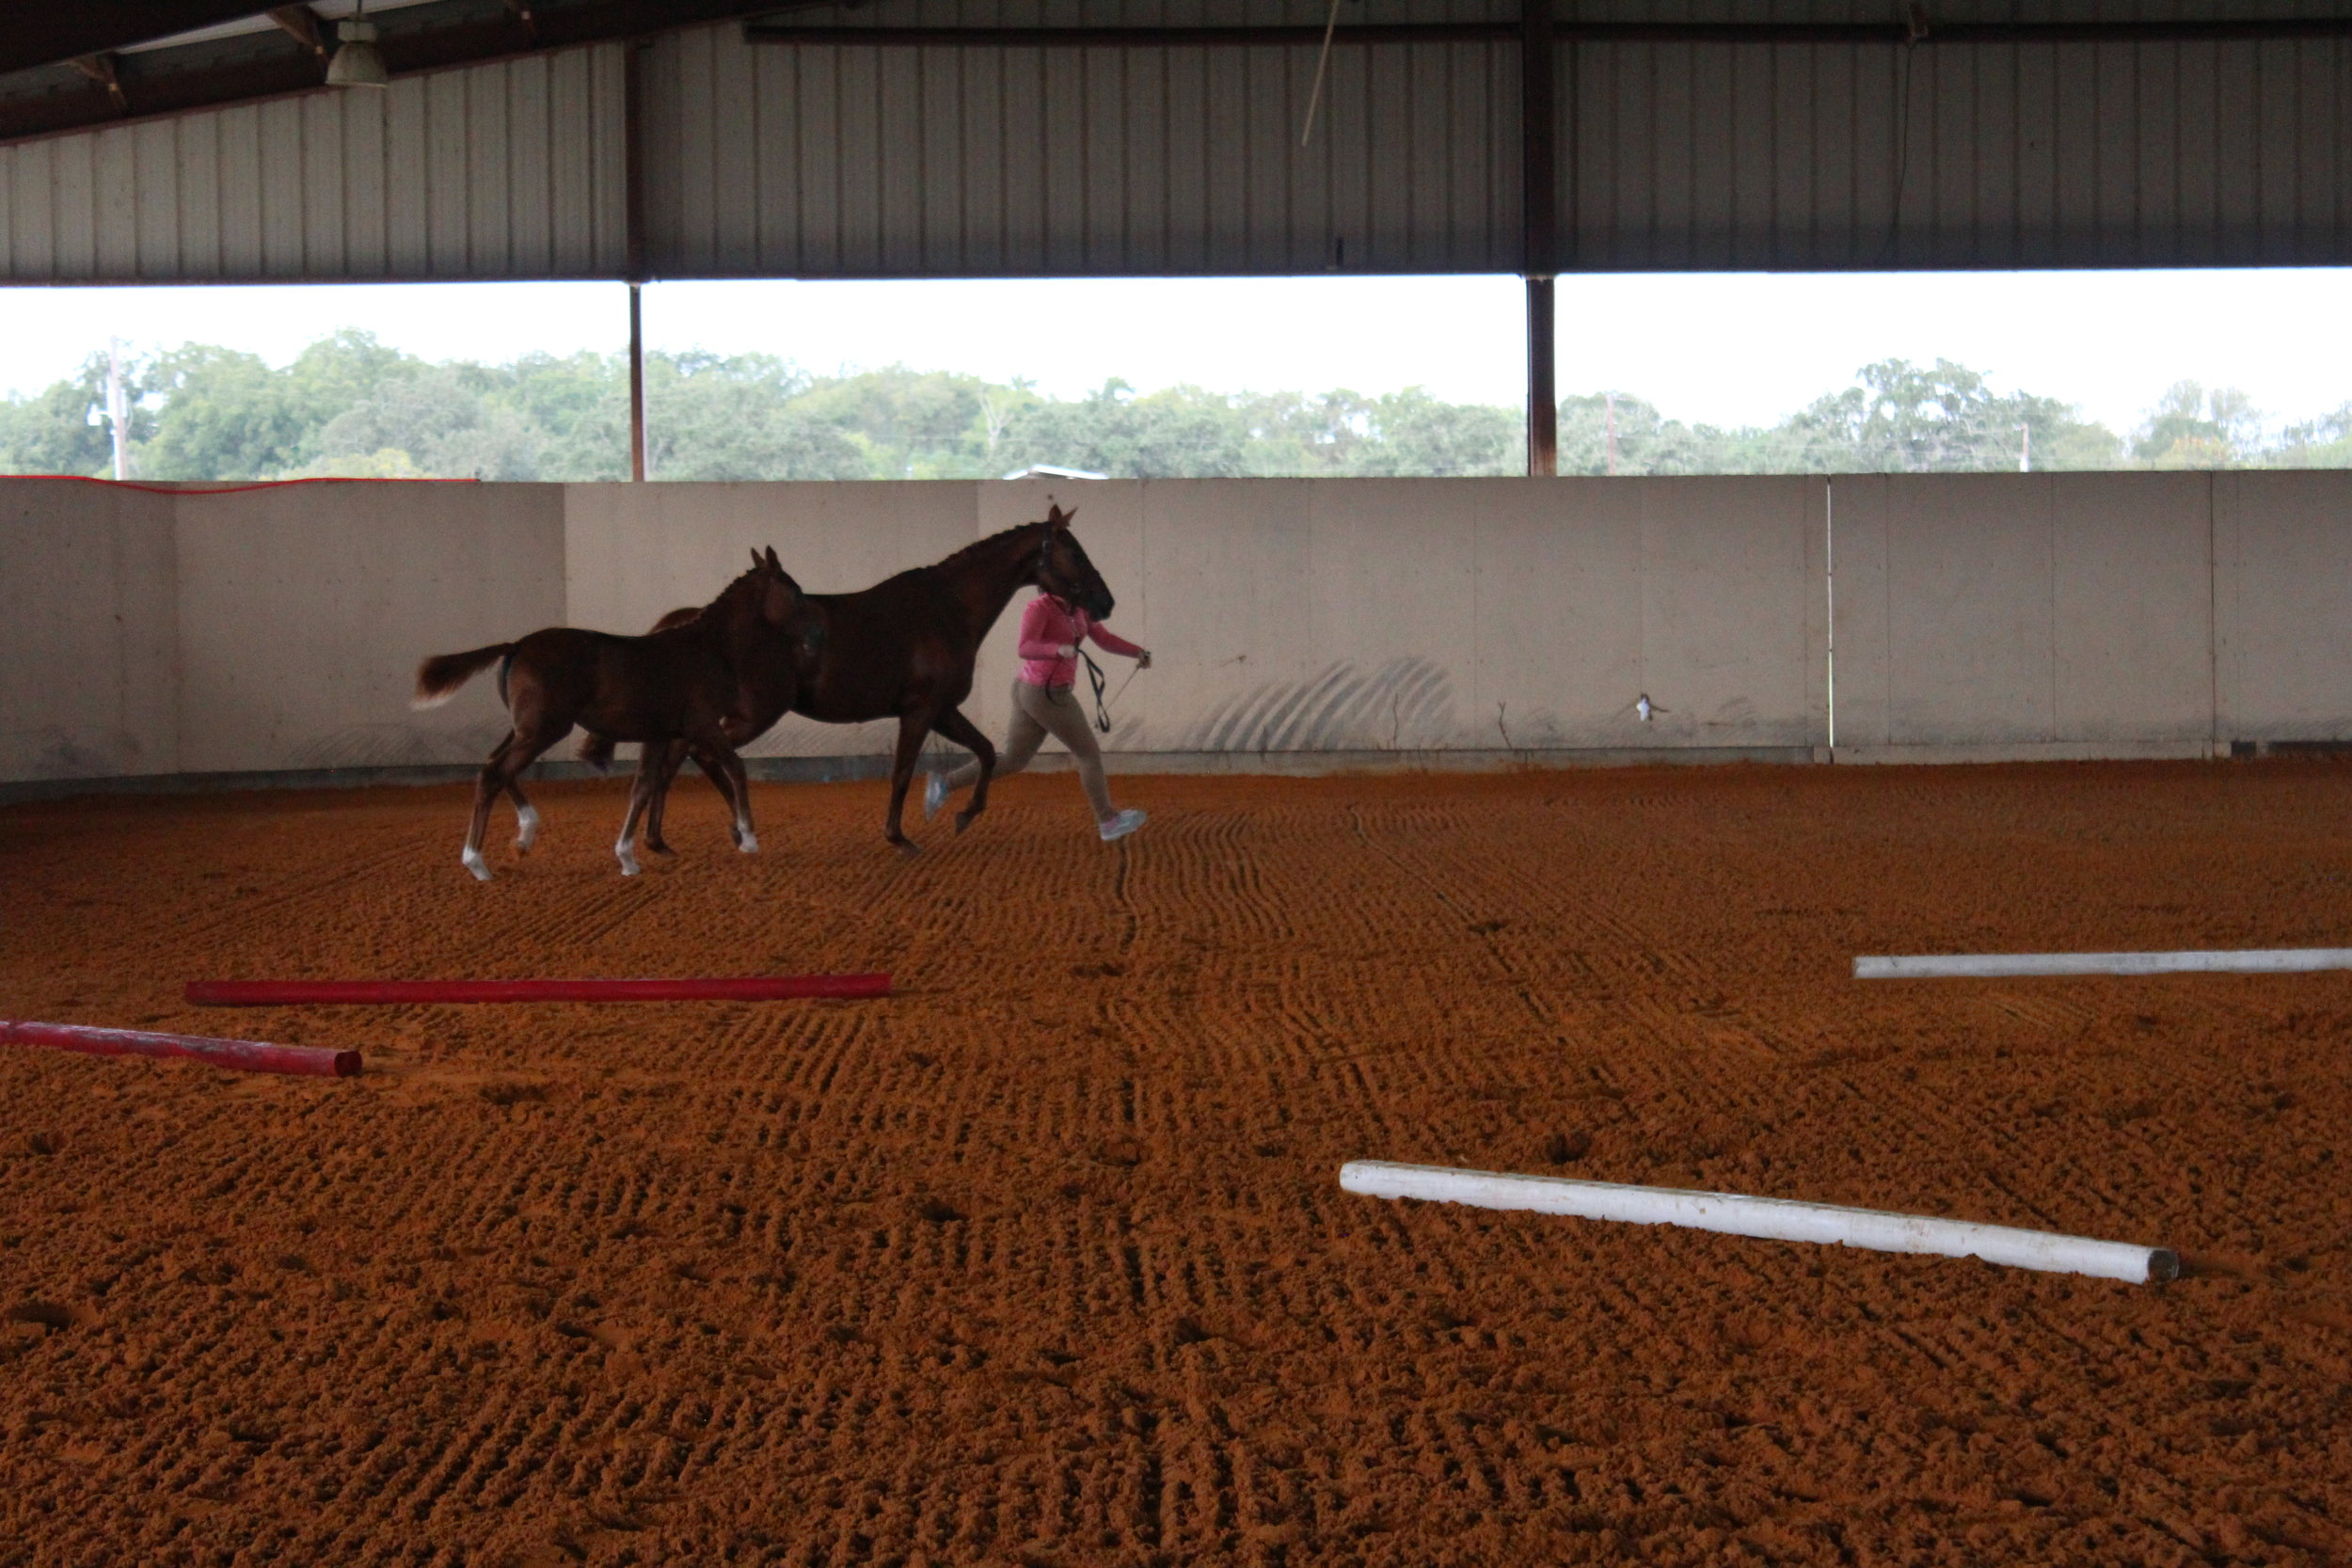 Thanks for showing off your best gaits at inspections, P. All the eye rolls.